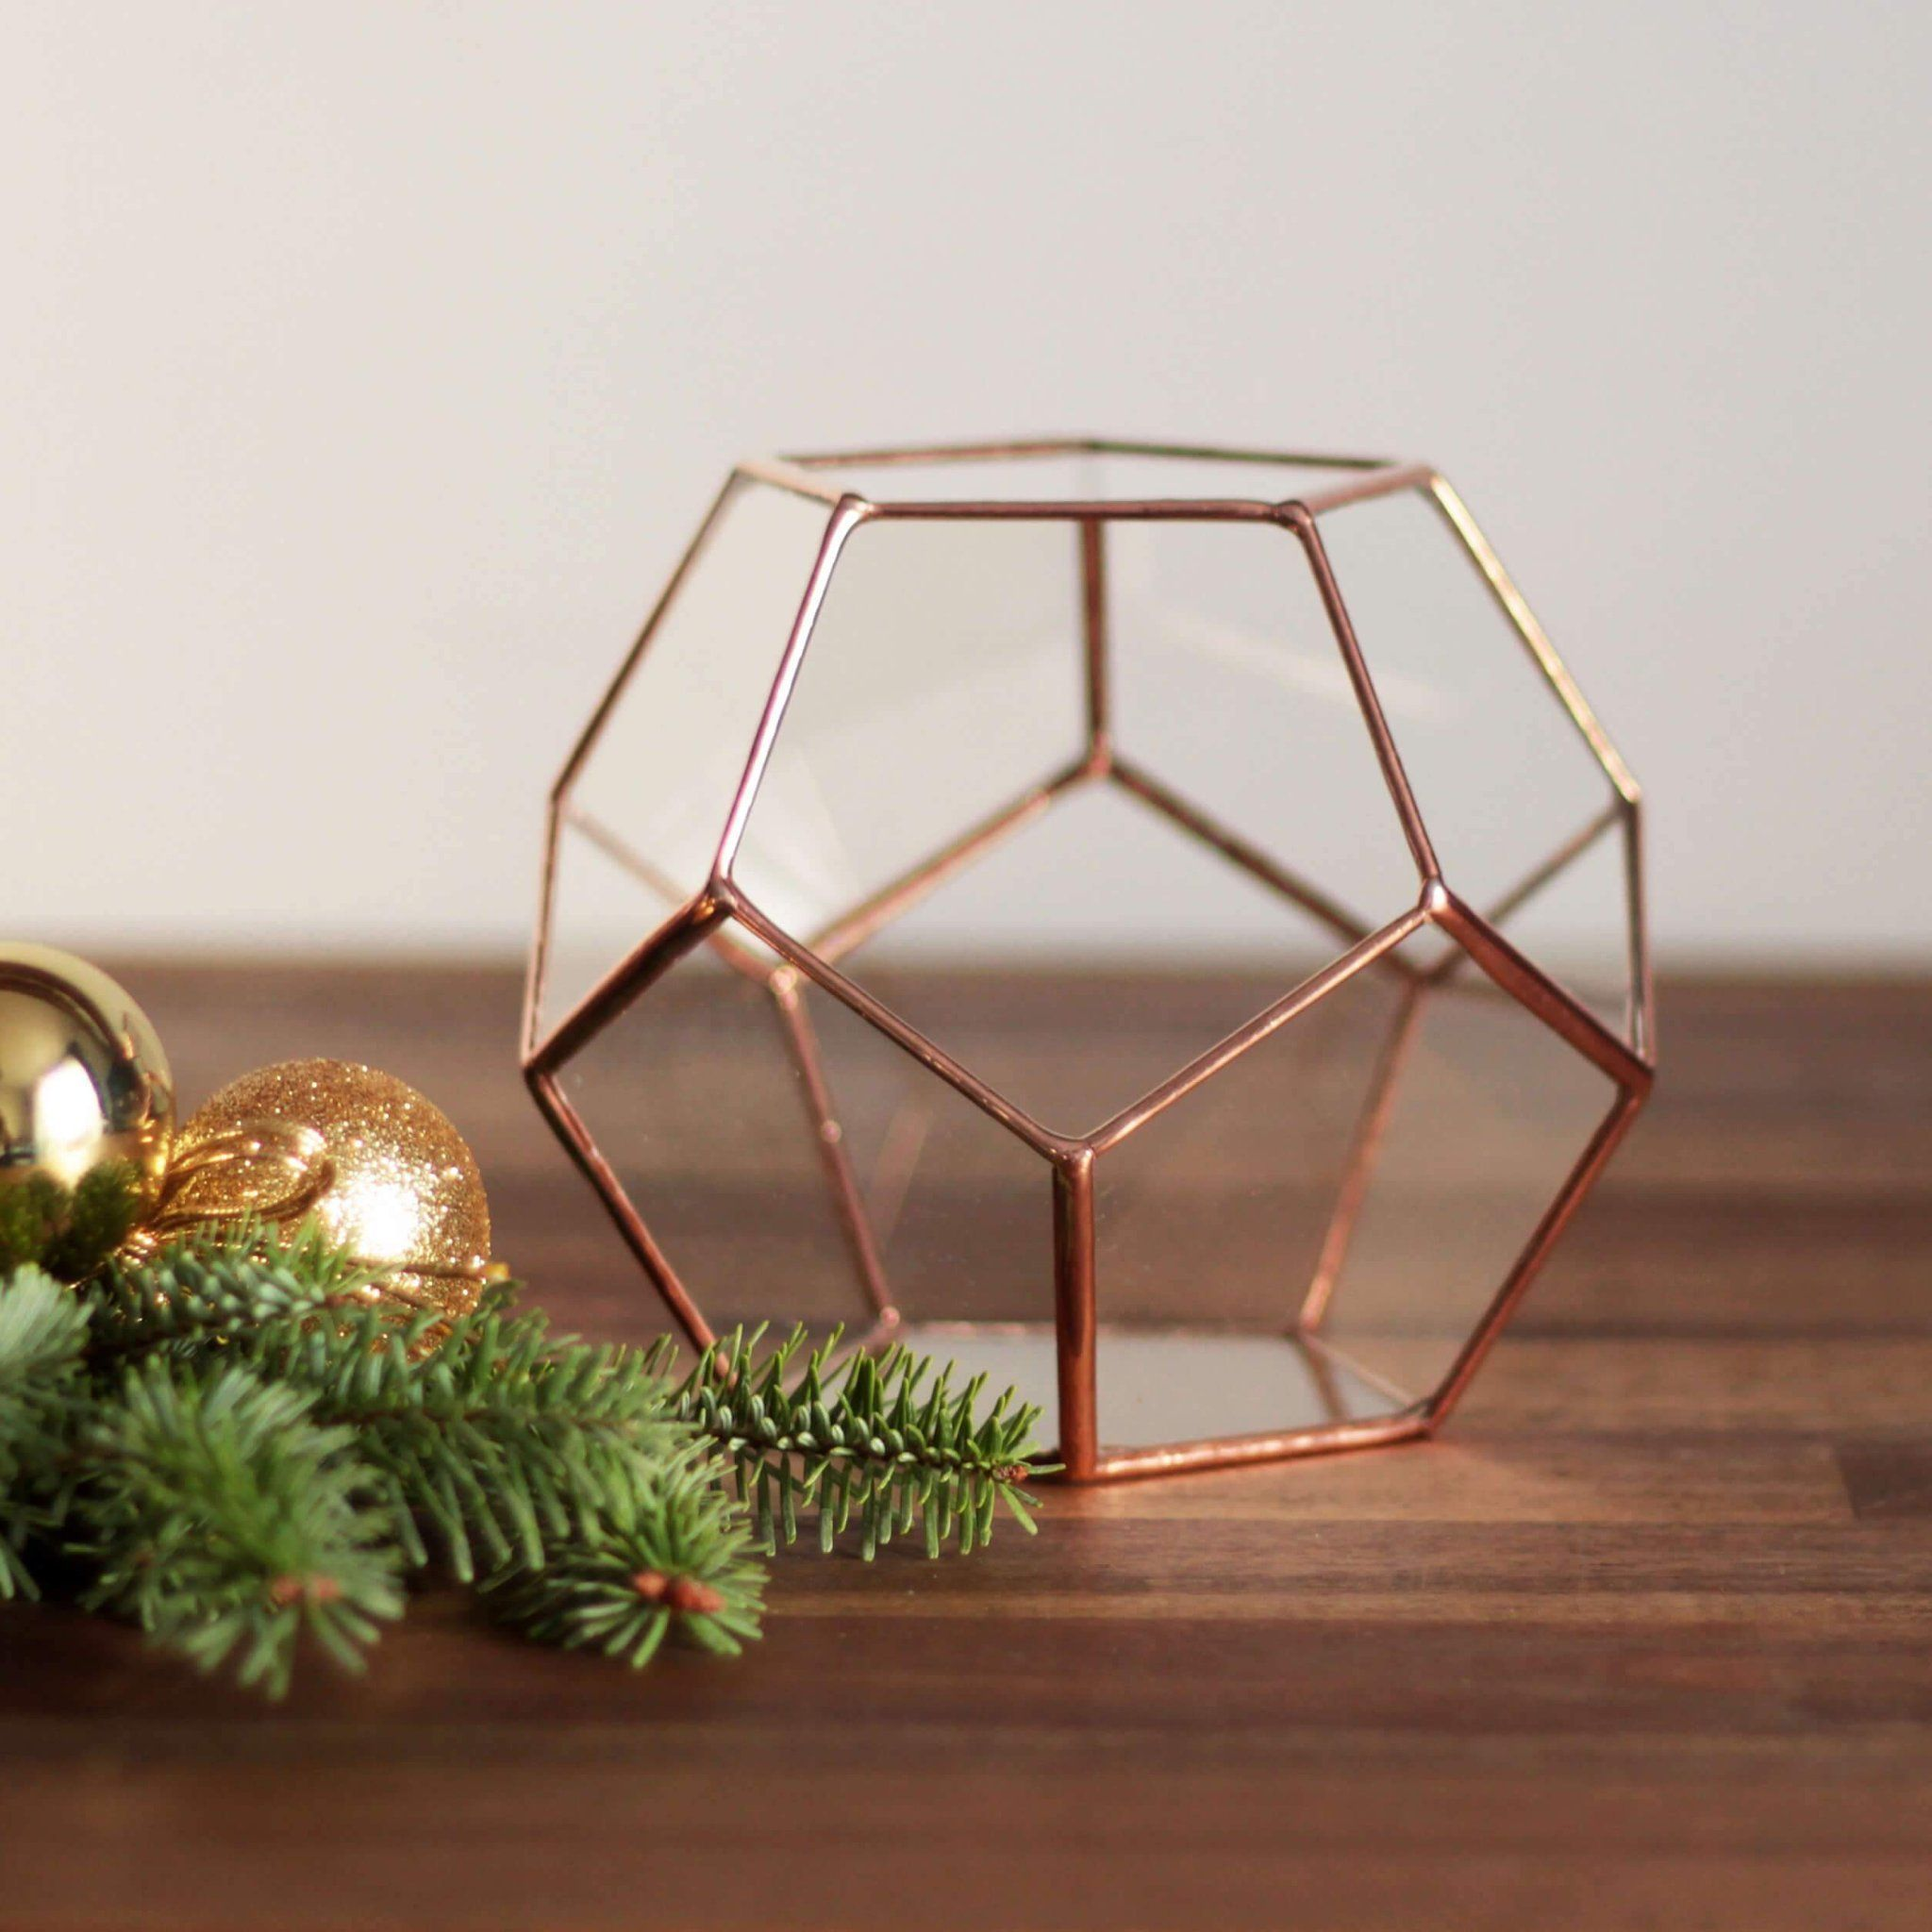 Geometric Terrarium Container Terrarium Container | Gift for Gardeners Small Geometric Terrarium Container | Gift for Gardeners by WaenSmall Geometric Terrarium Container | Gift for Gardeners by Waen